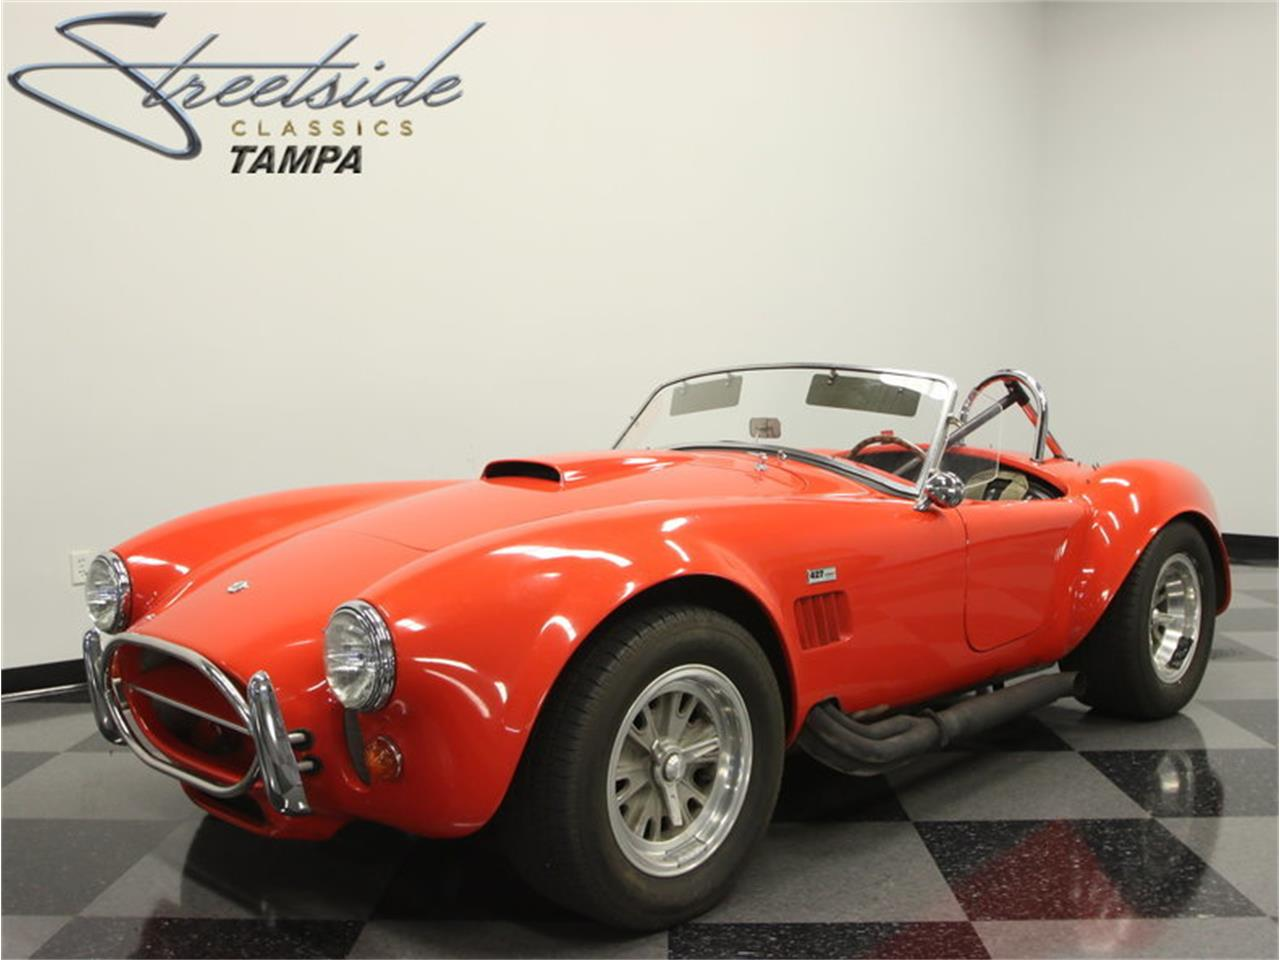 For Sale: 1966 Shelby Cobra ERA 427 in Lutz, Florida